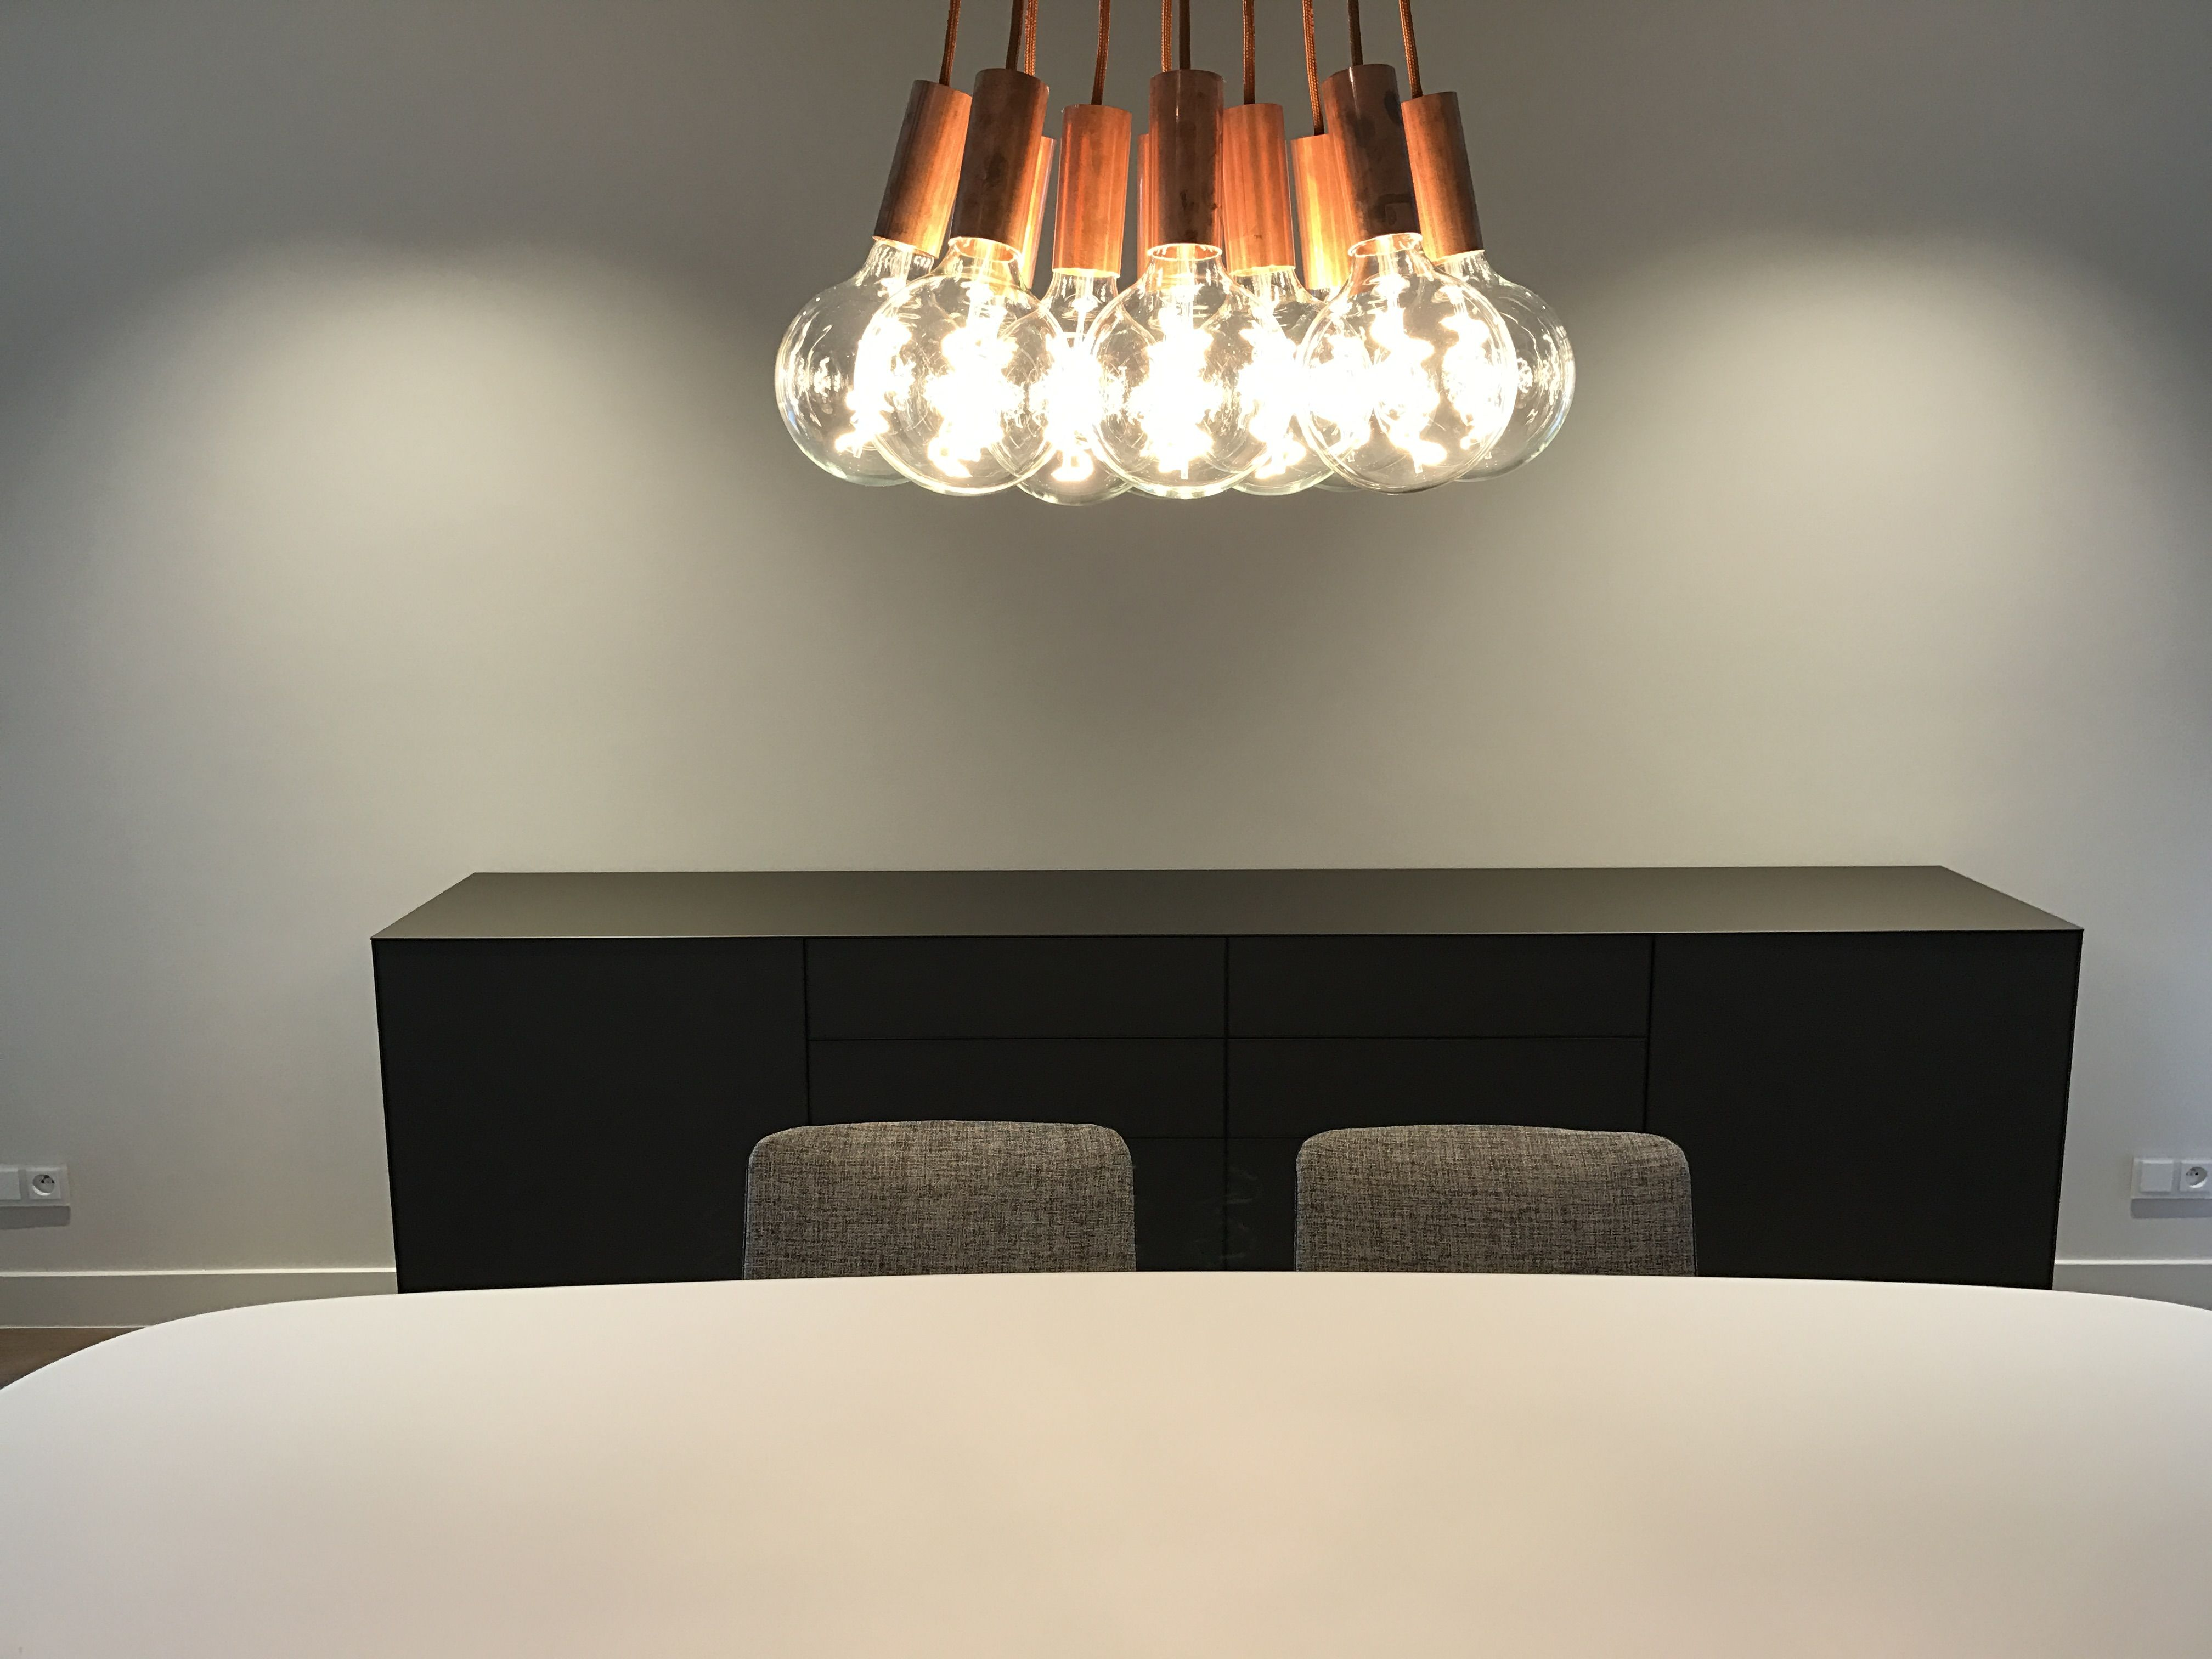 Differend interior design plafondverlichting op maat in combinatie